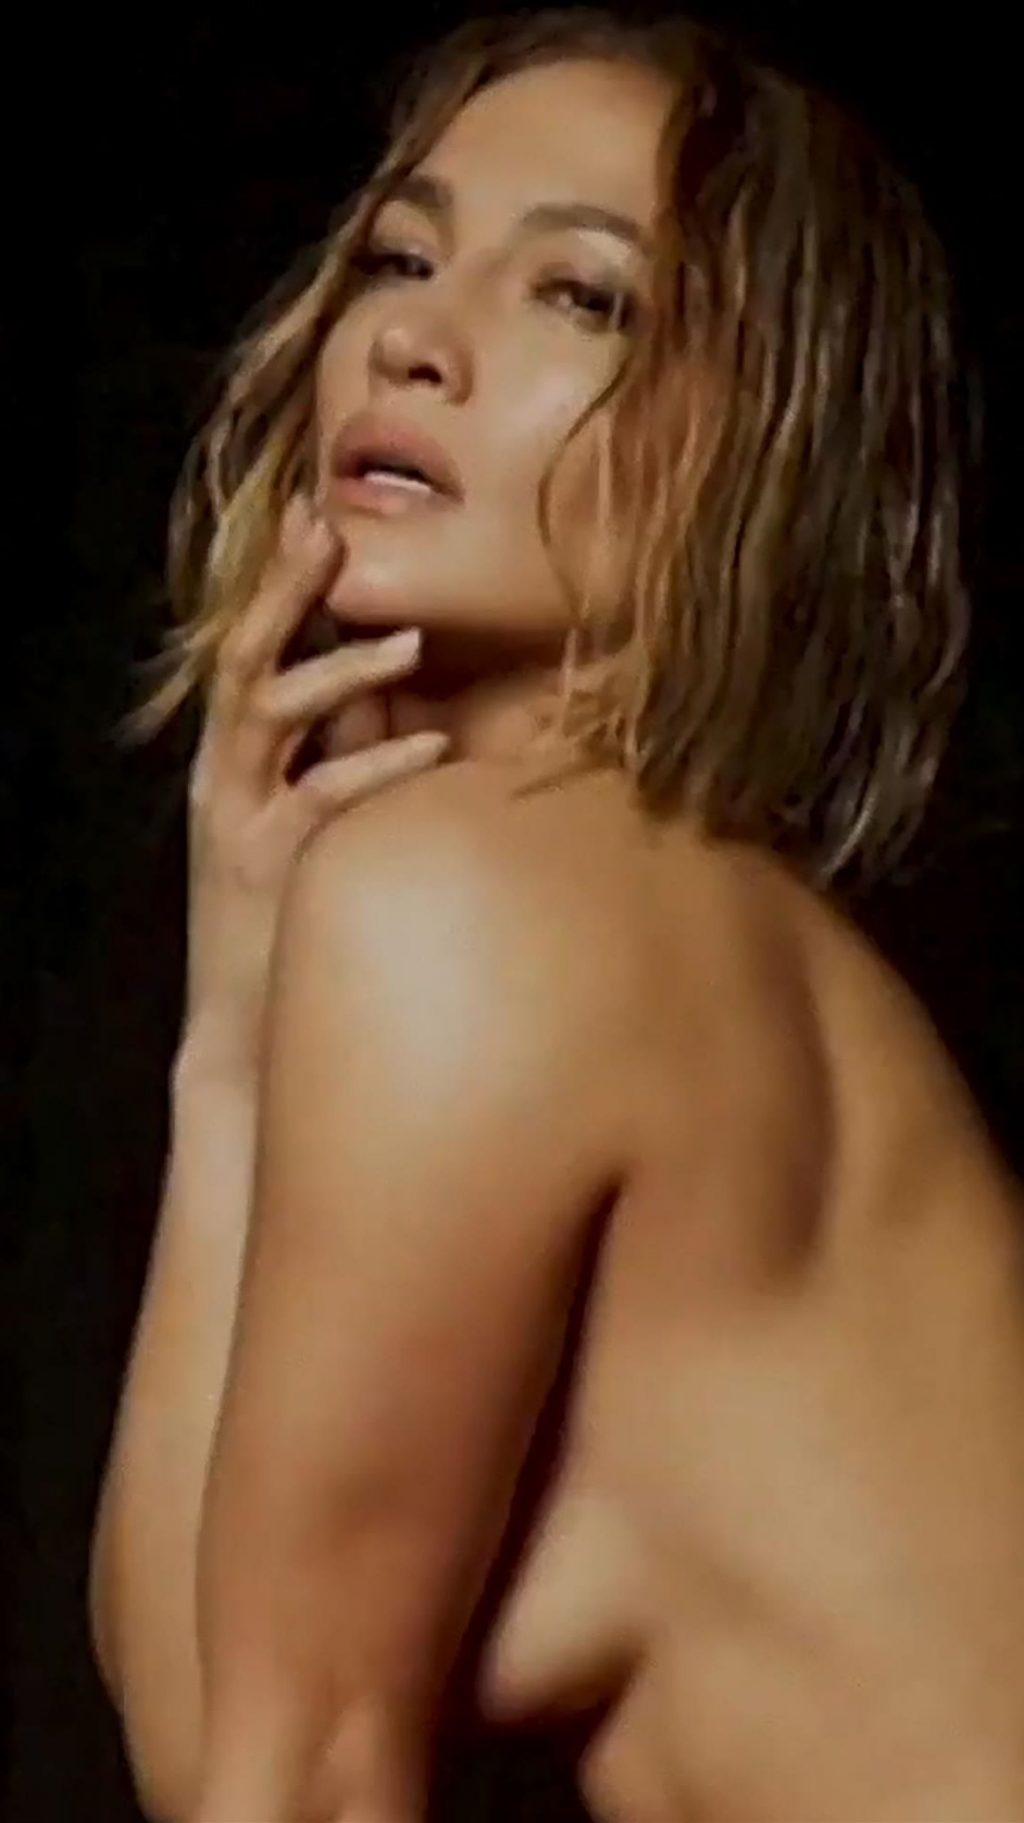 Jennifer Lopez is Naked in Her New Music Video Teaser (22 Pics + Video)